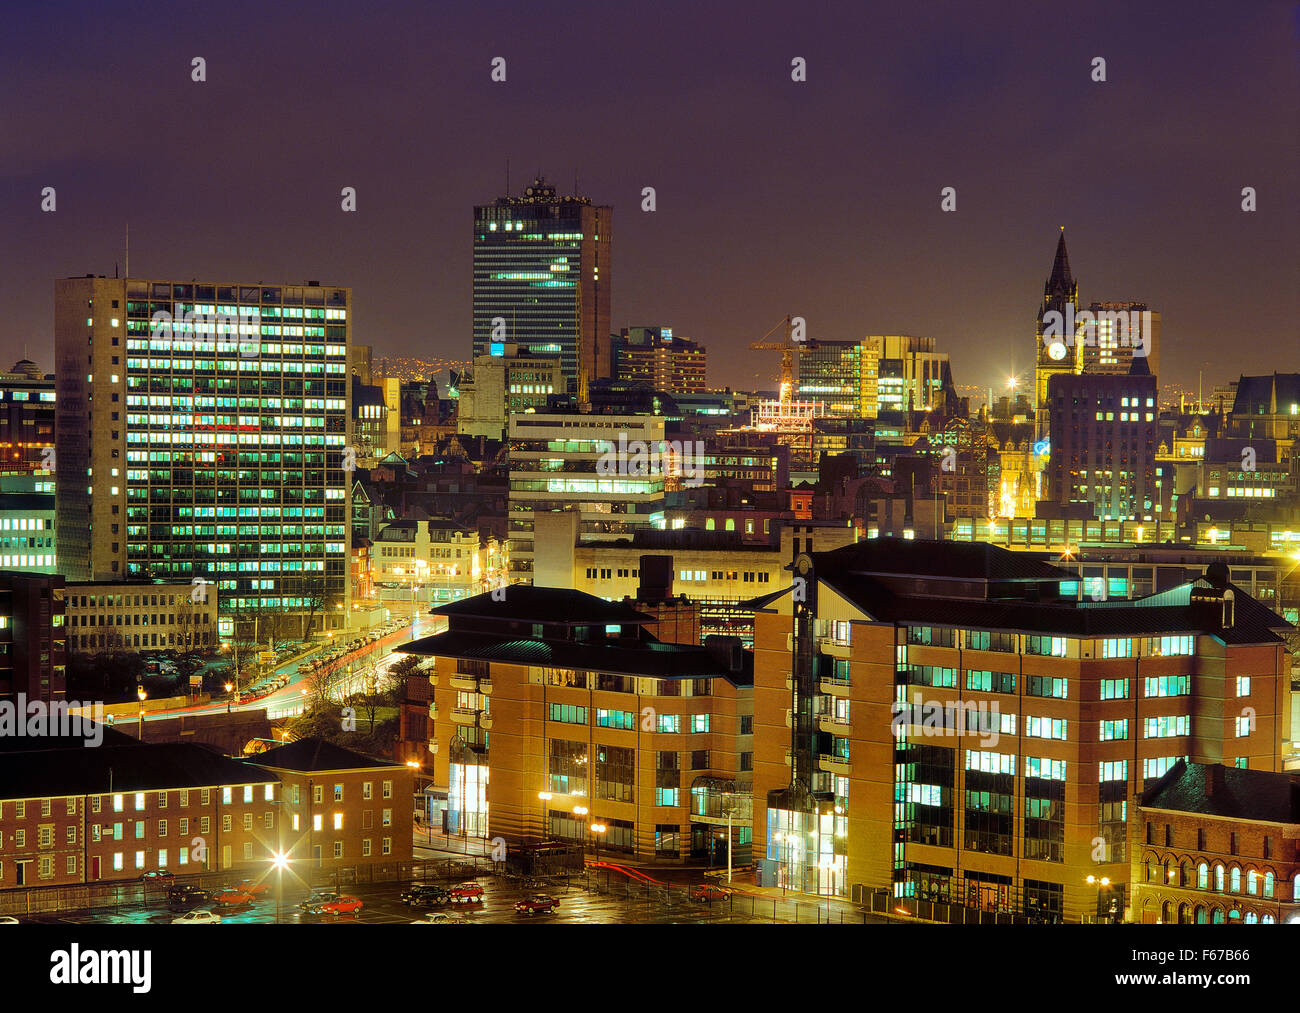 Skyline of Manchester town centre, Greater Manchester, England. Wider view can be seen on image ref: B8G2YE - Stock Image